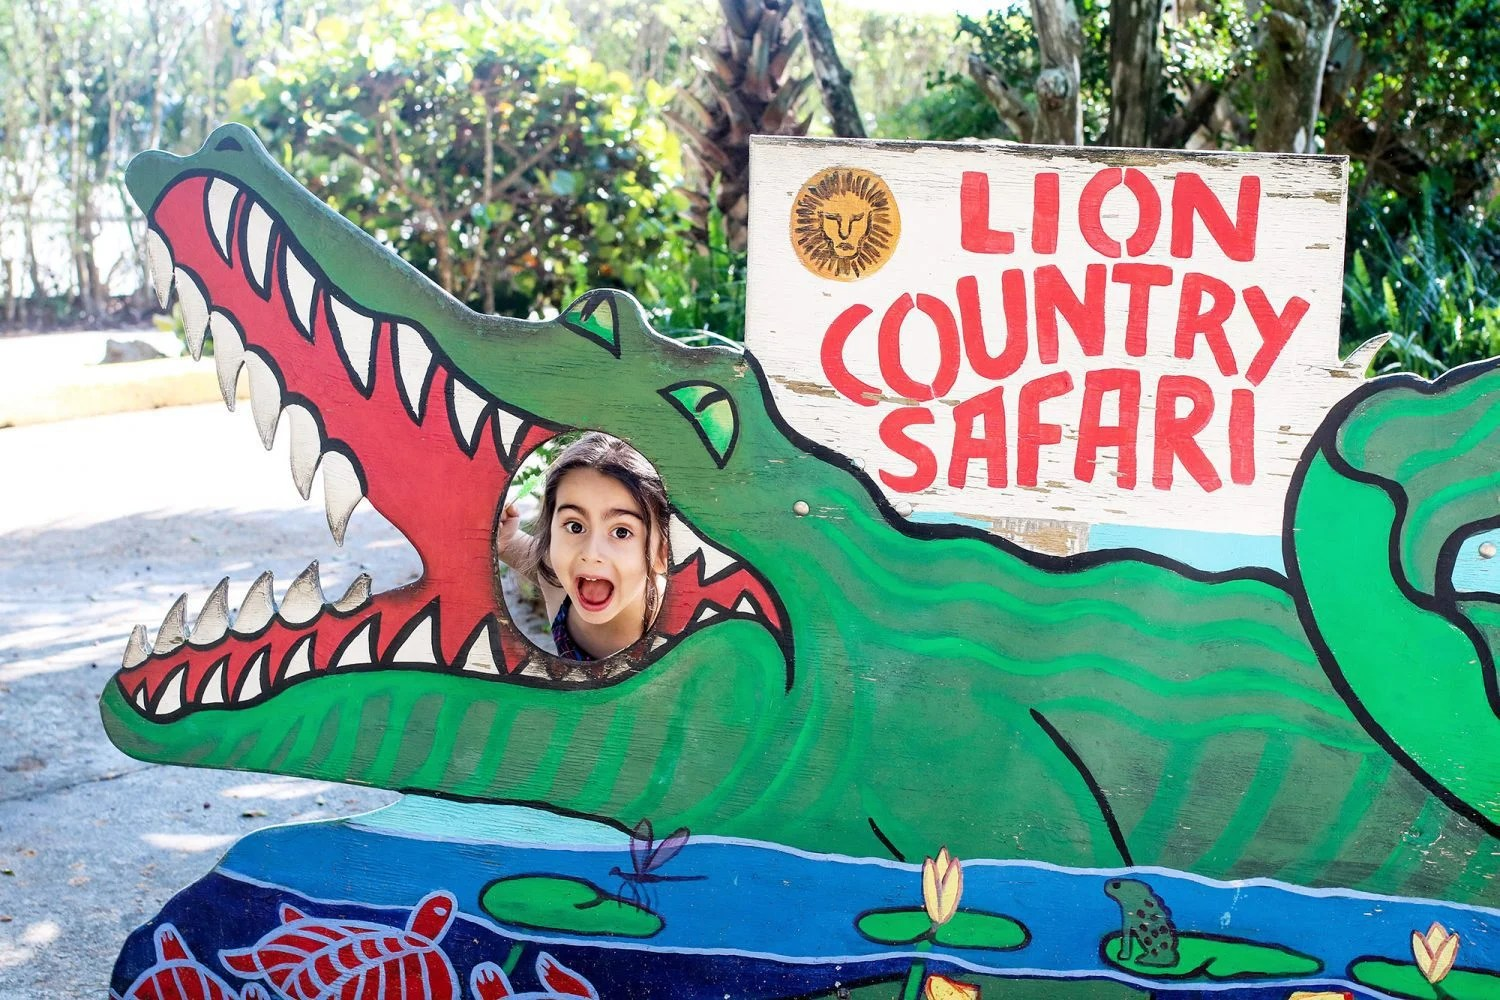 lion country safari, zoo, florida zoo, zoo in florida, safari, drive through safari, florida safari, palm beach, west palm beach, palm beach attraction, palm beach zoo, things to do in west palm beach, top attractions palm beach, things to do with kids in west palm beach, florida tourist attraction, things to do in florida